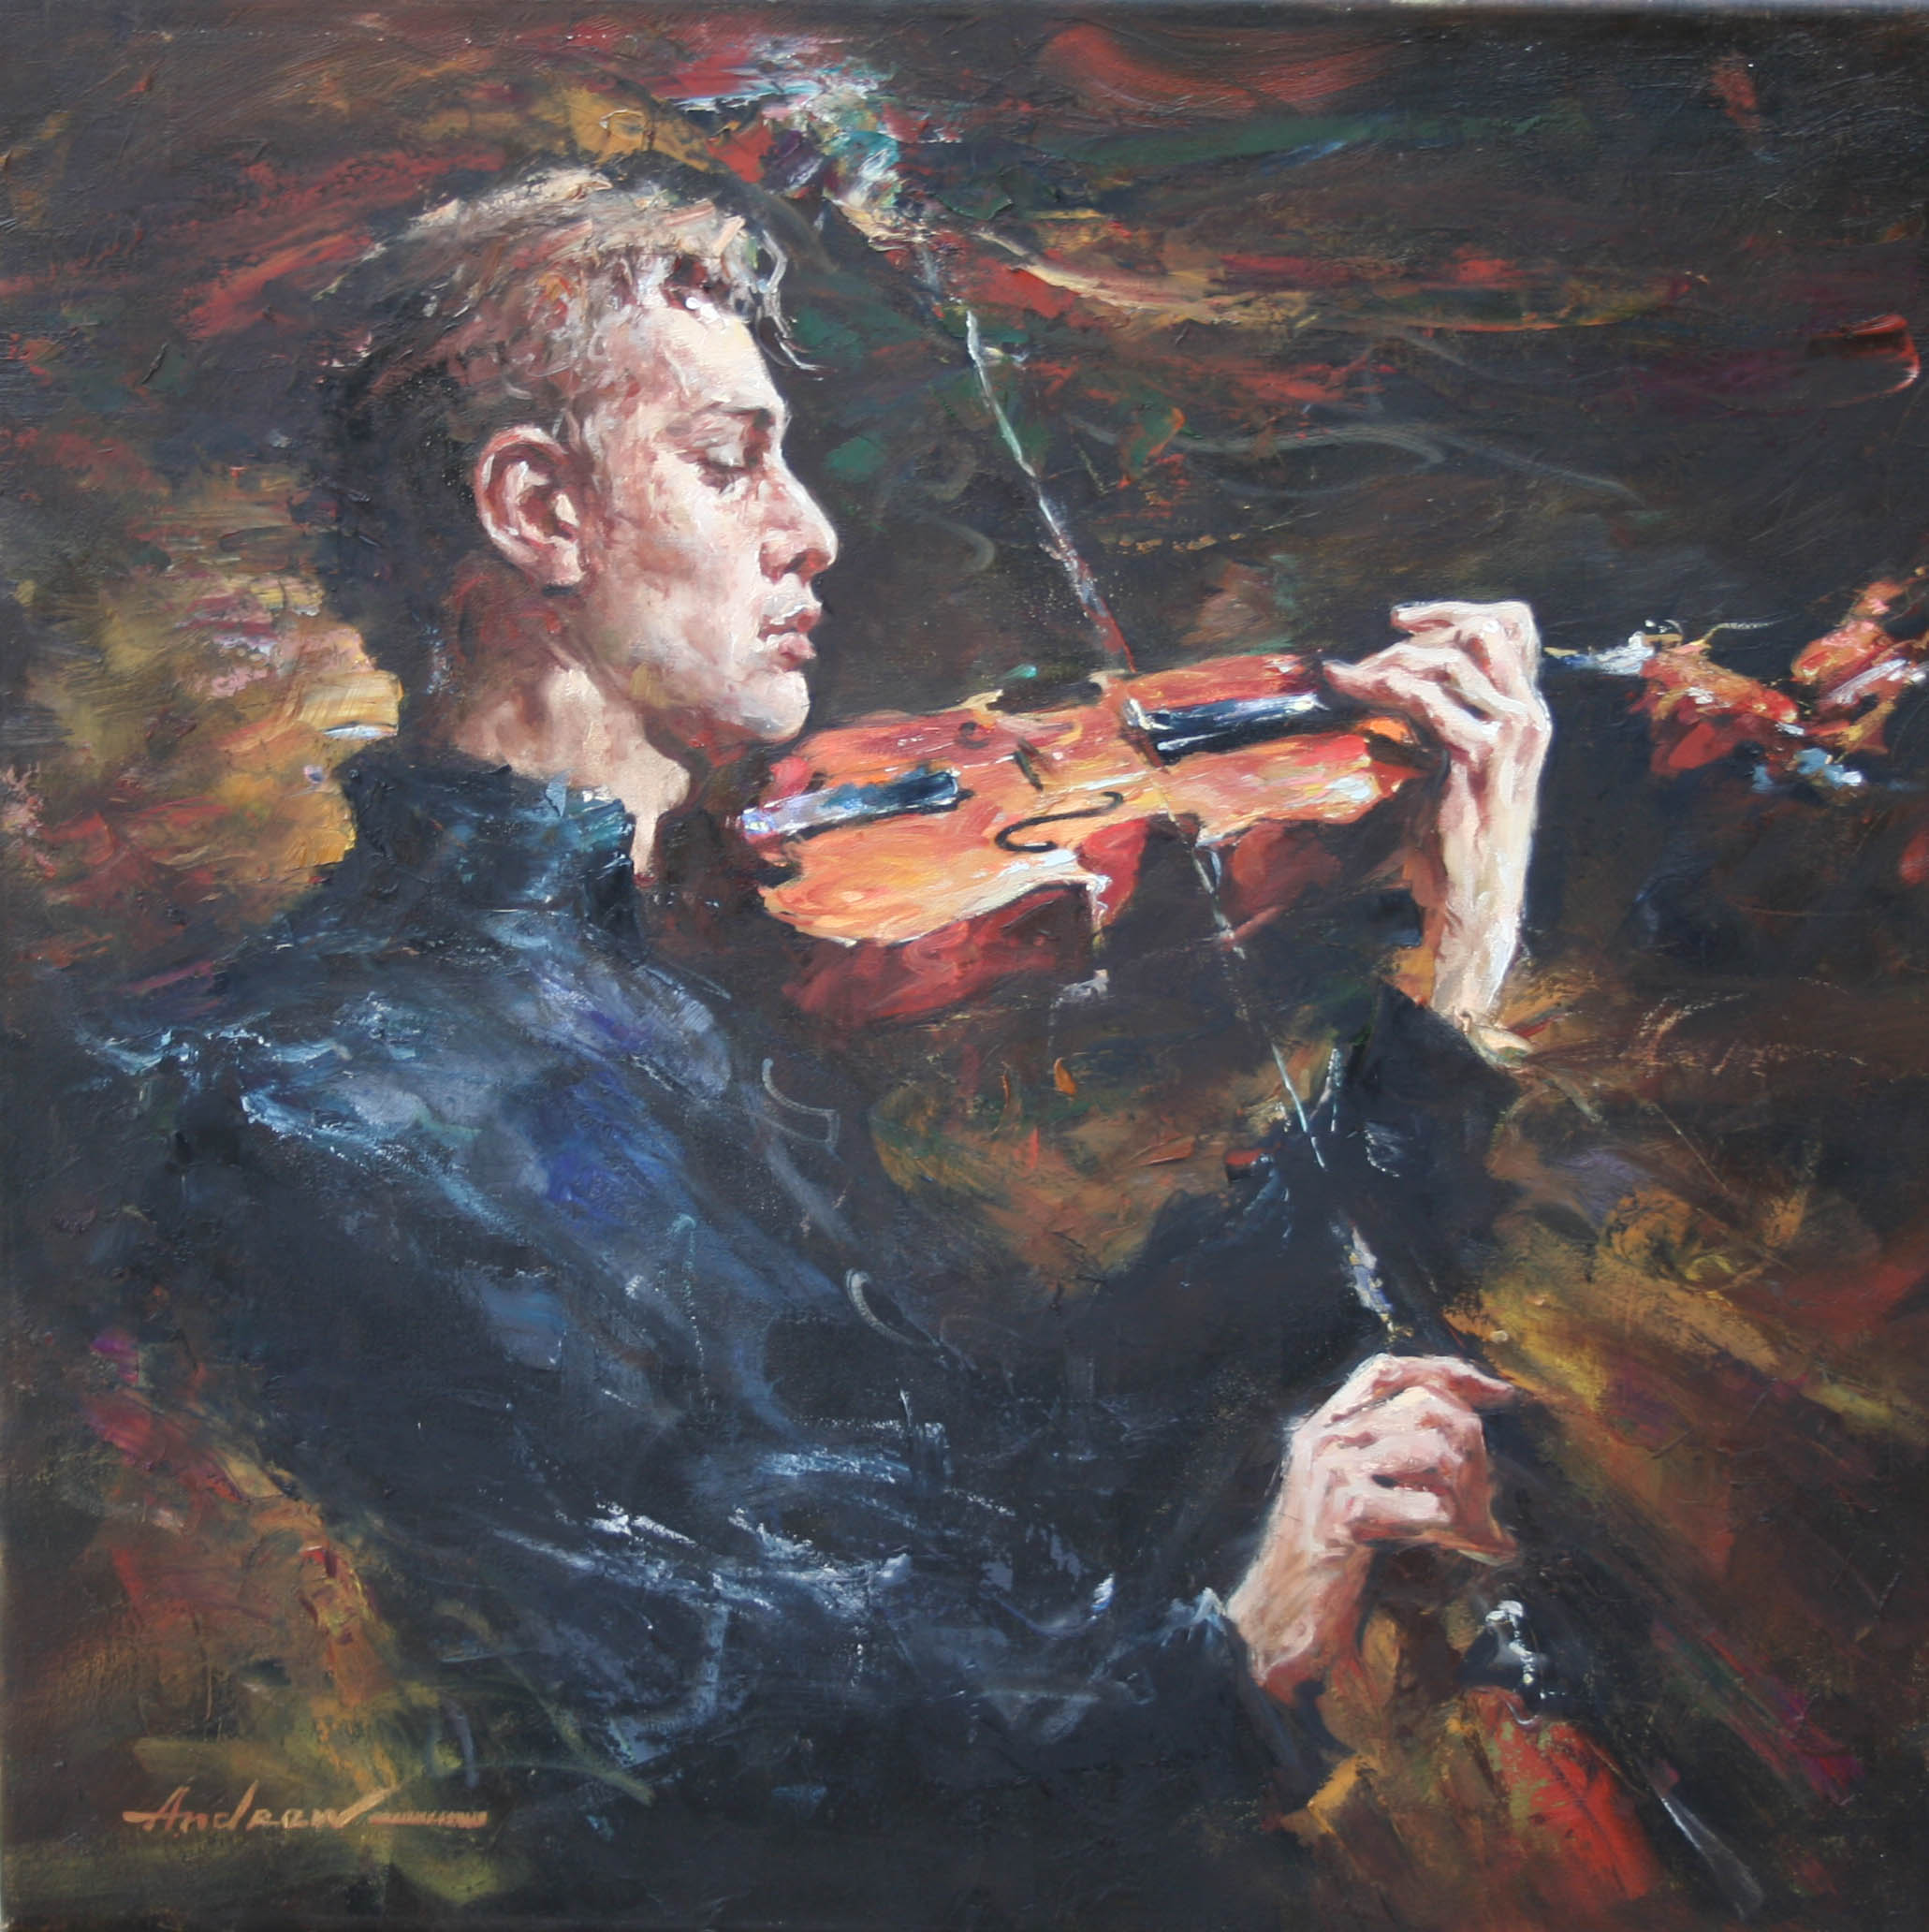 Andrew Atroshenko - Classical Expressions - Oil on Canvas Original Painting